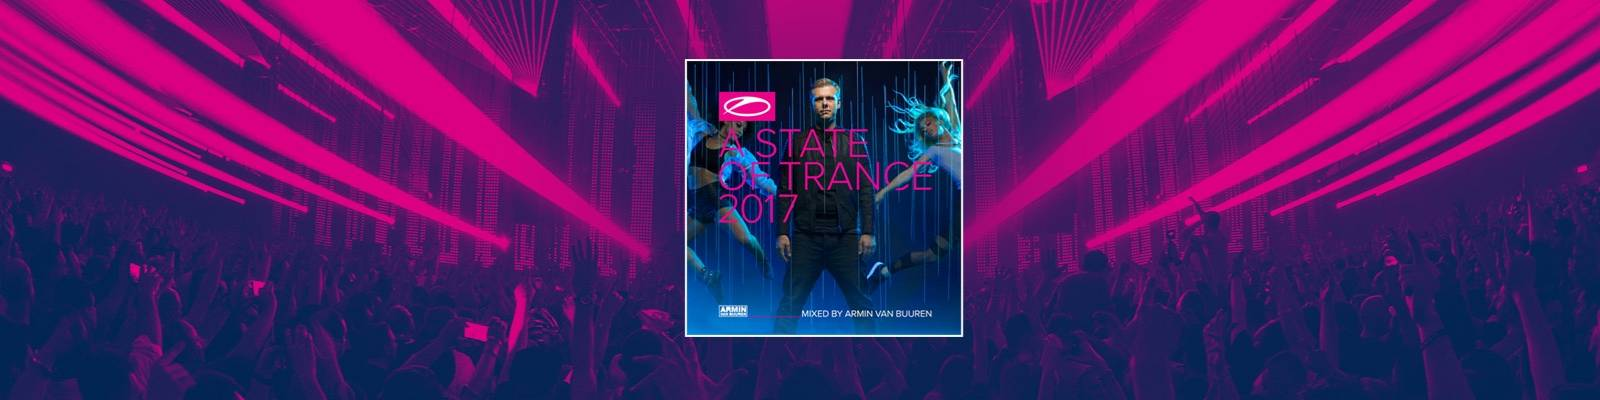 PRE-ORDER NOW: A State Of Trance 2017